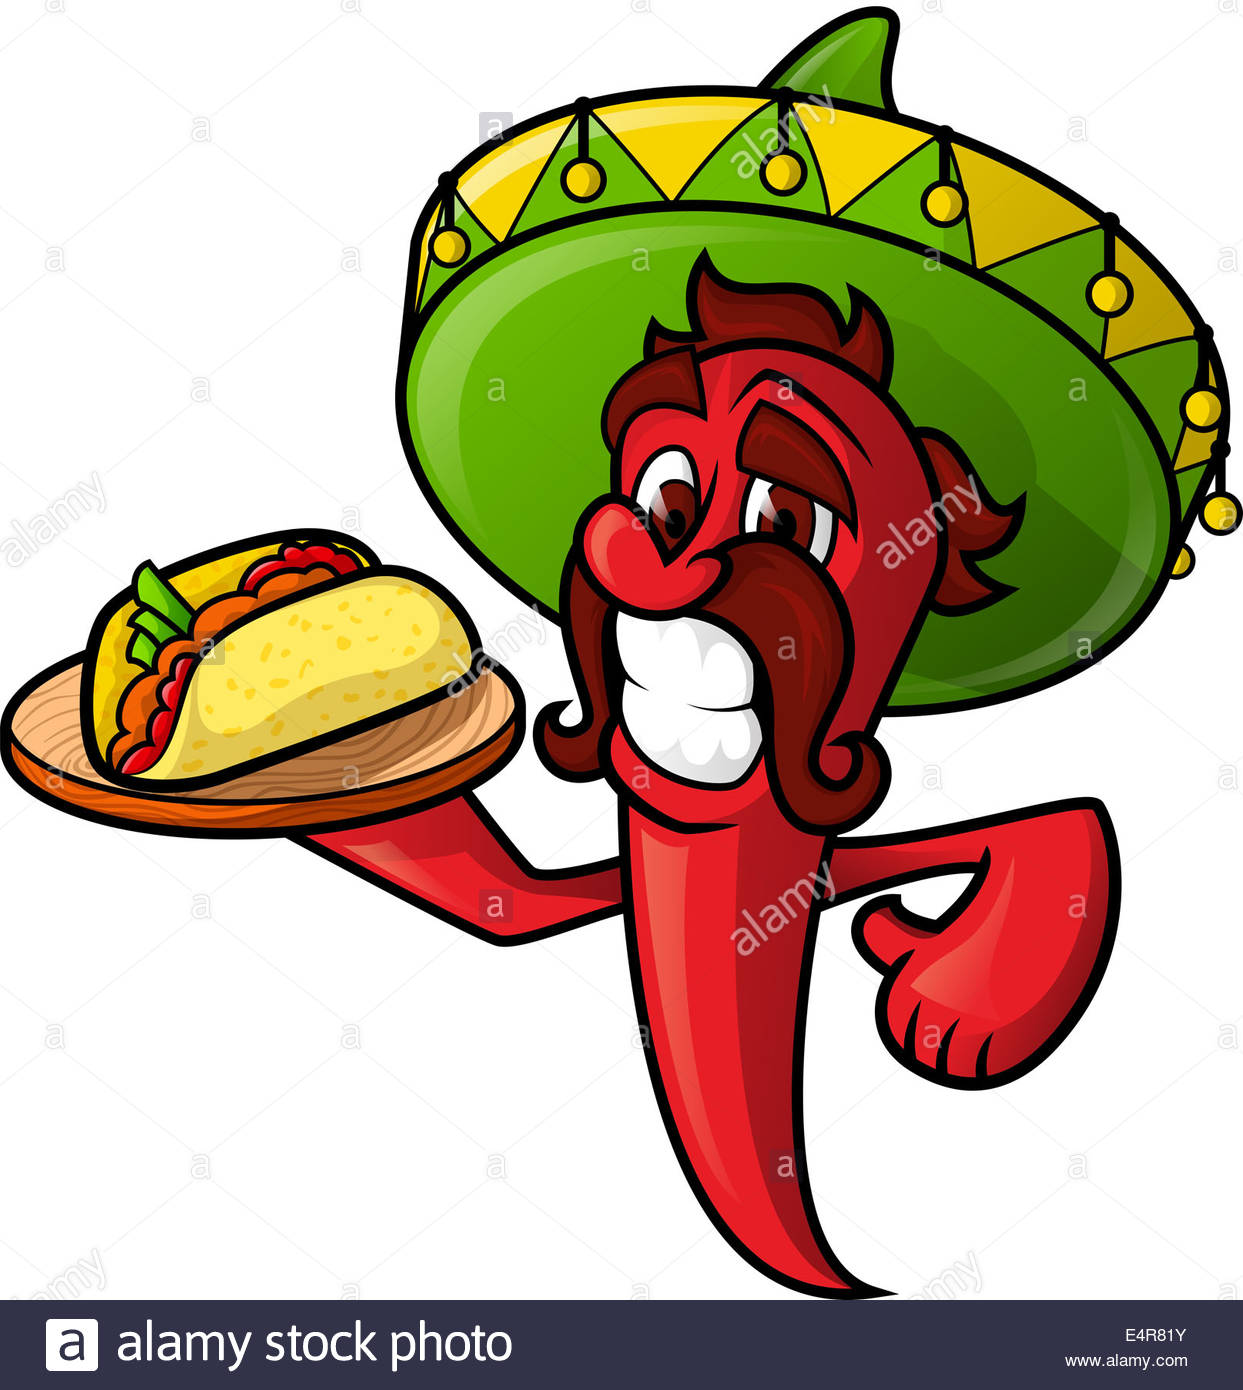 1243x1390 Mexican Pepper Holds A Tray Of Tacos. Cheerful Character Chili